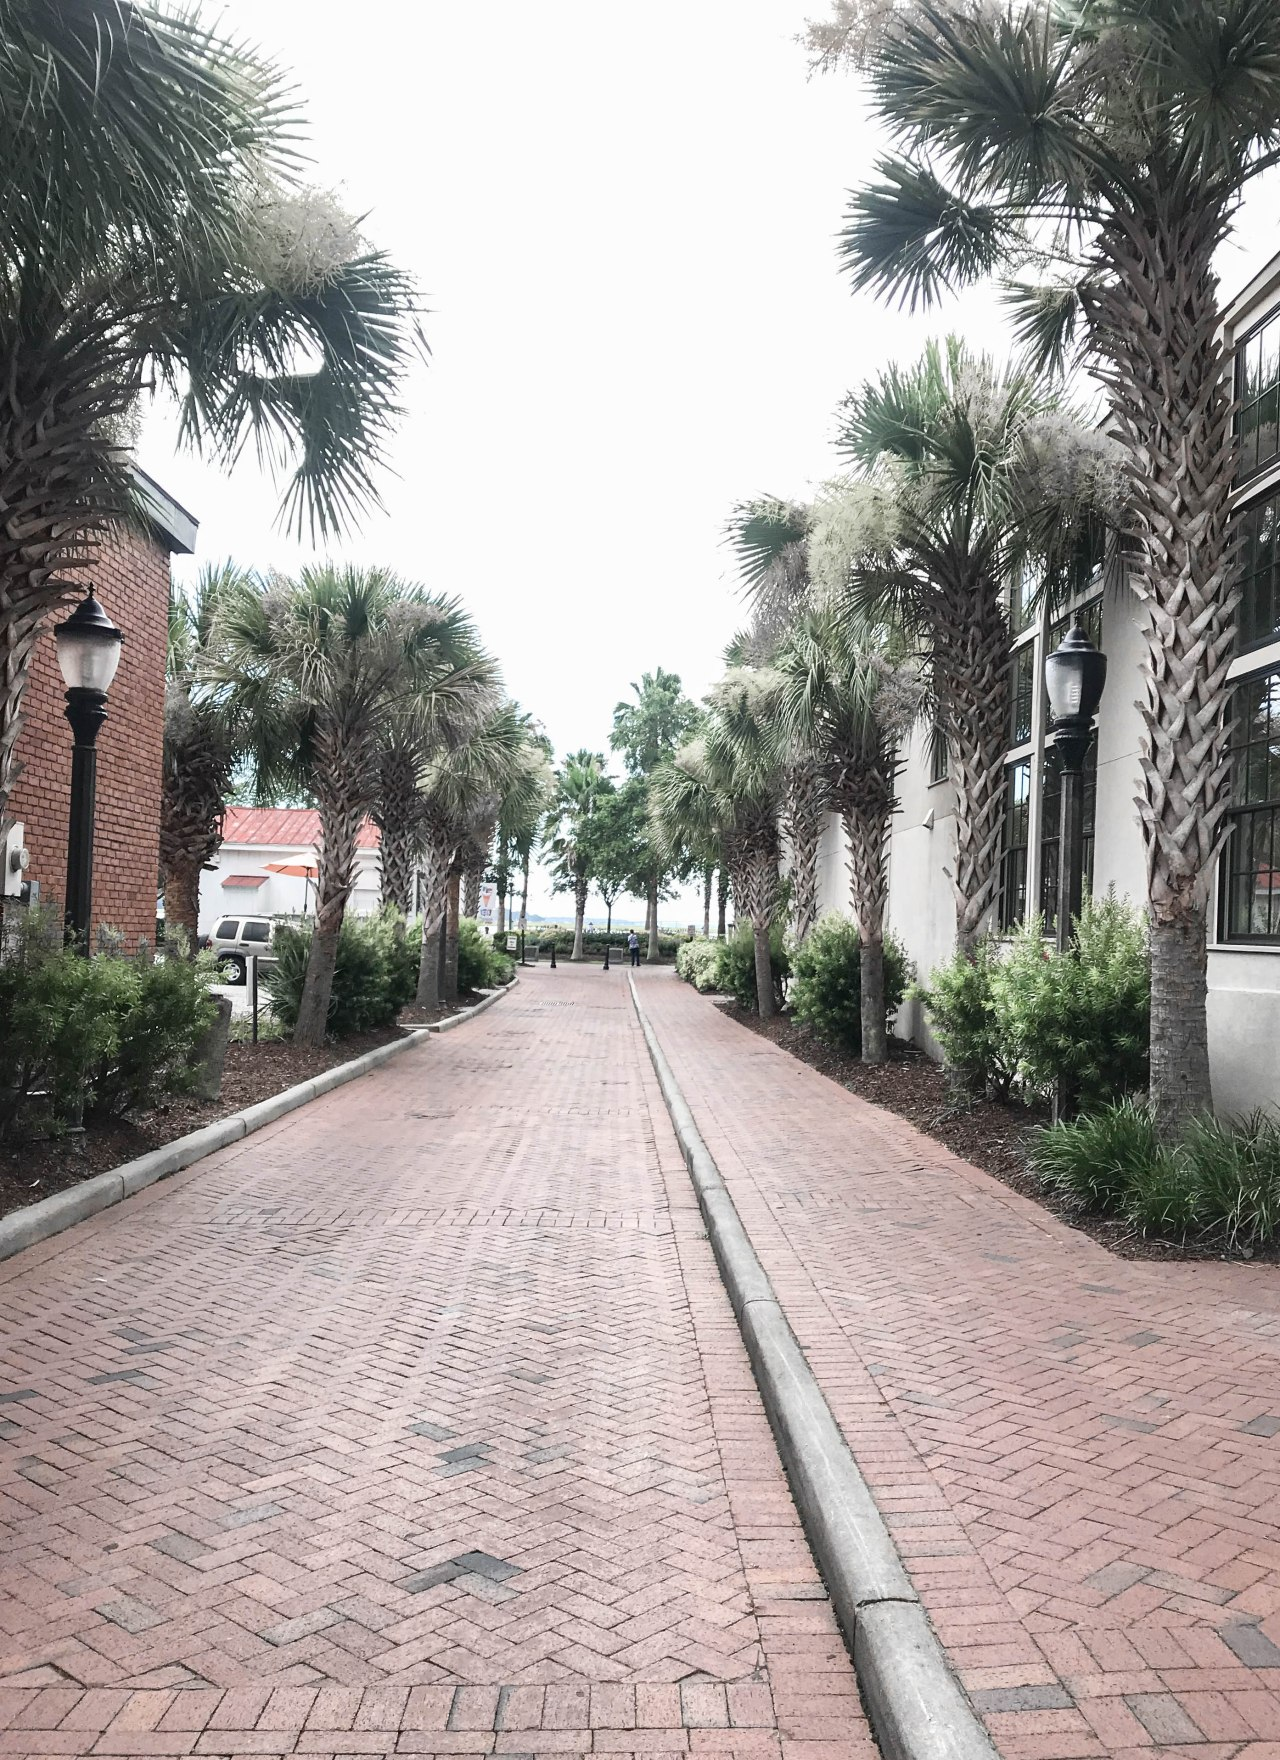 Beaufort, South Carolina Travel Guide: What to do in Beaufort